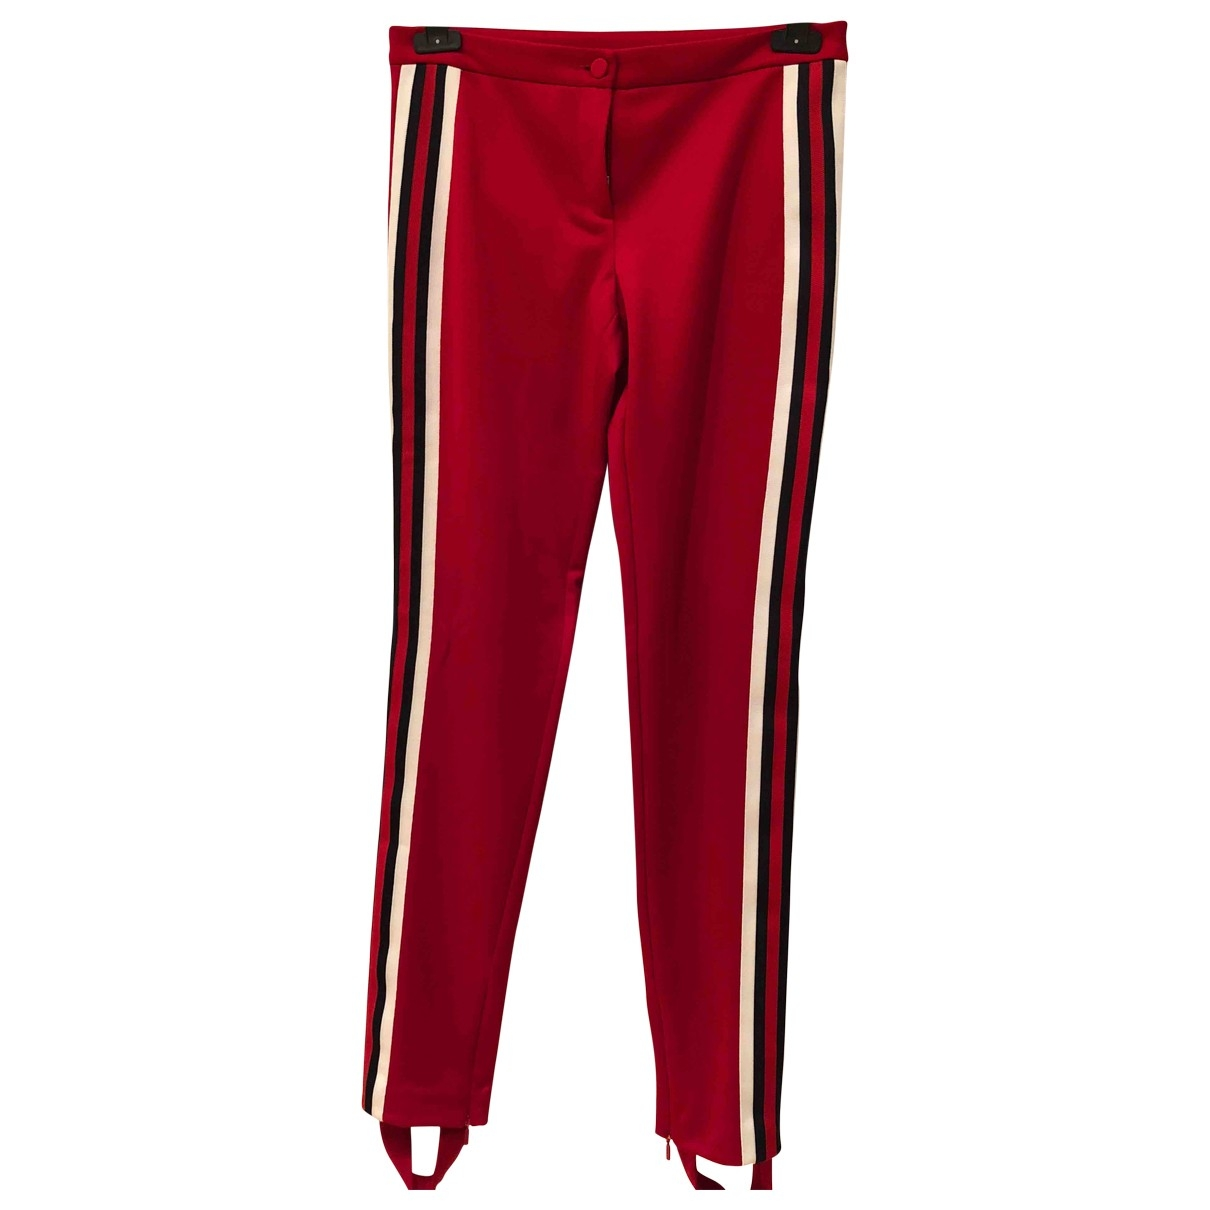 Gucci \N Red Cotton Trousers for Women S International